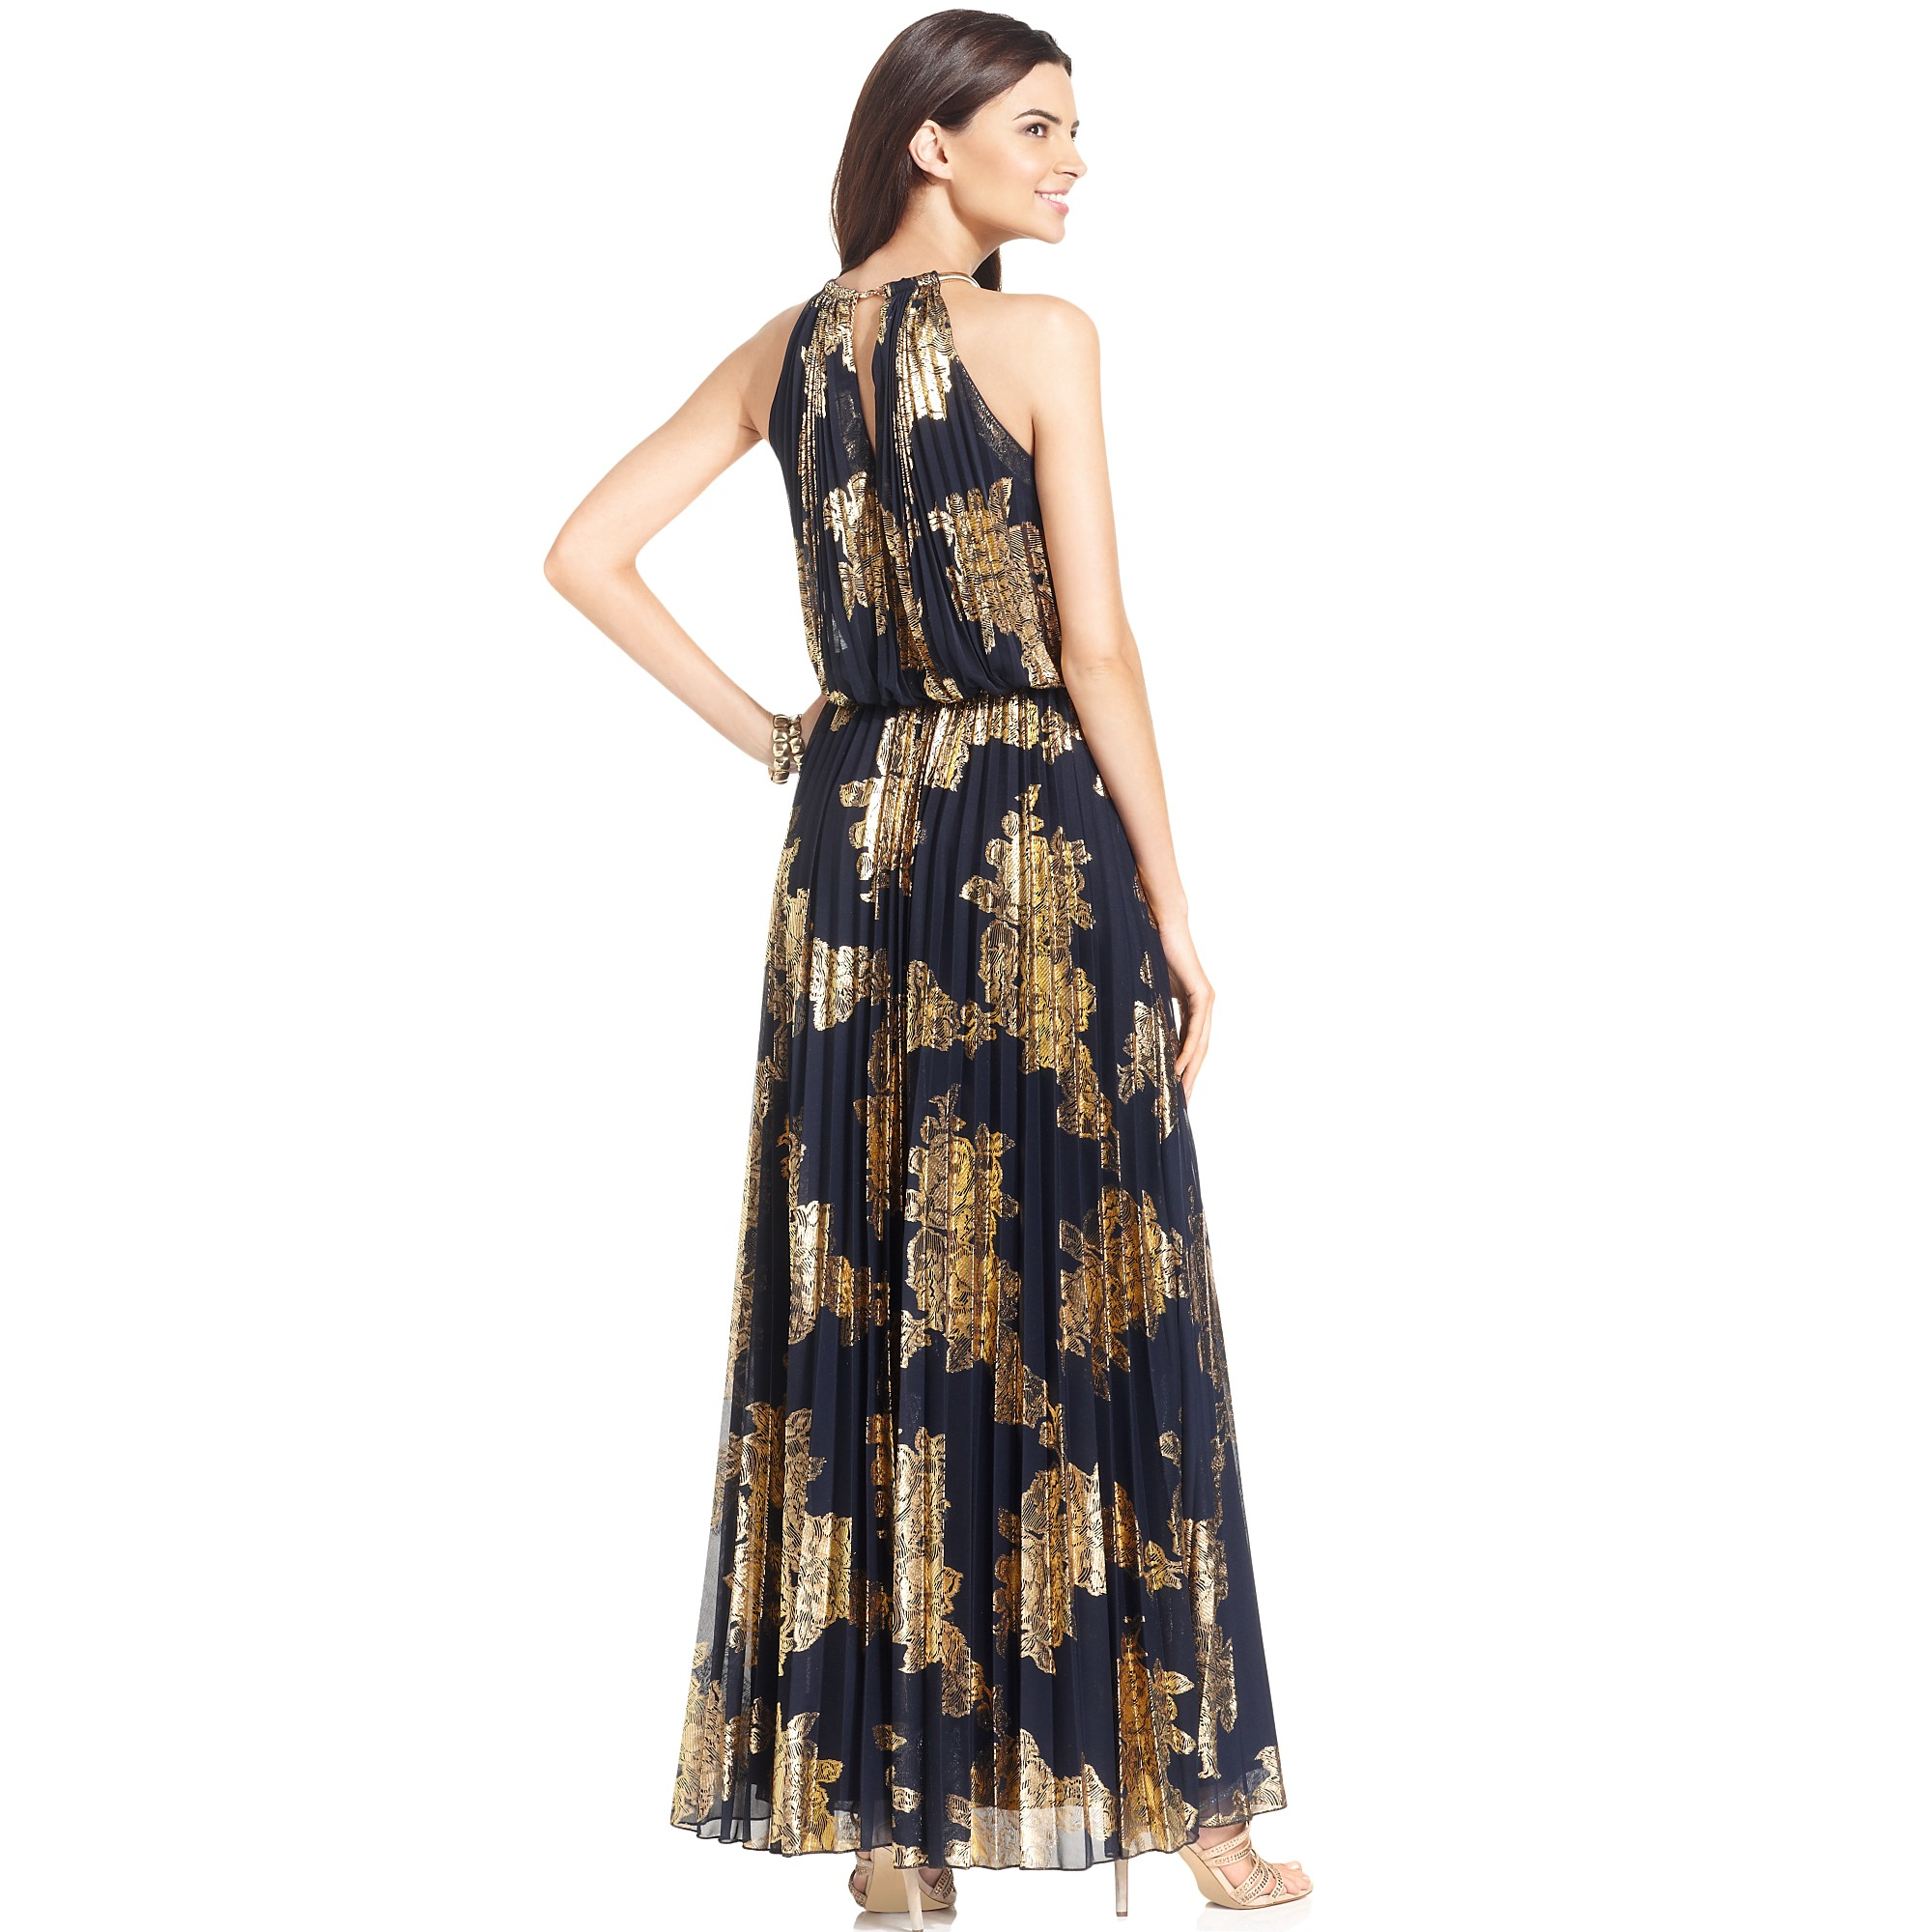 Lyst - Xscape Xscape Dress Sleevless Halter Pleated Gown in Blue